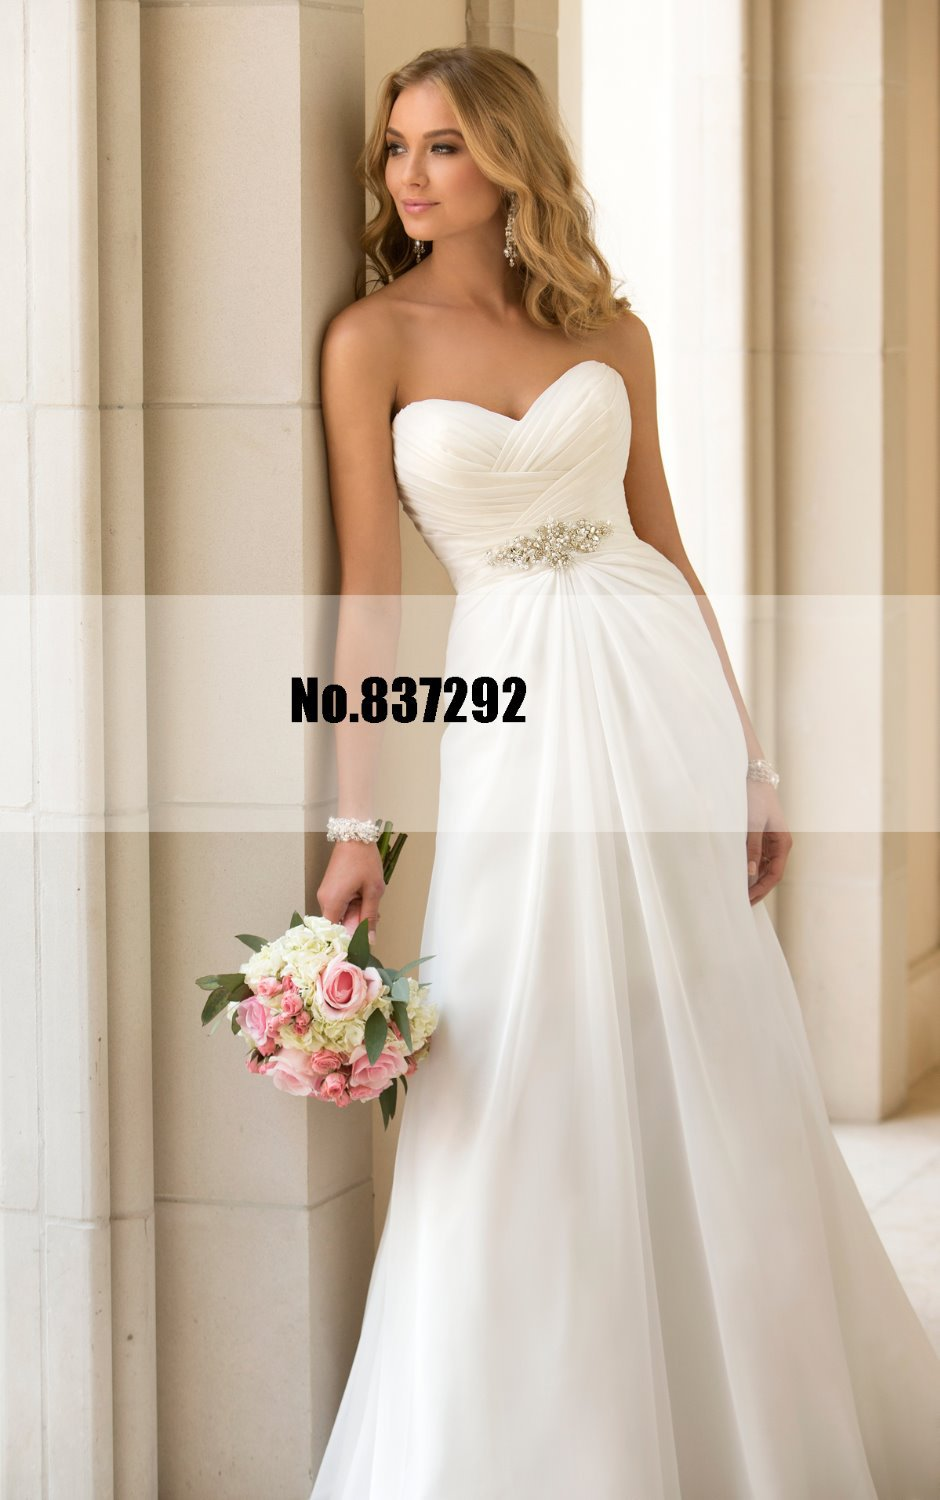 White Plus Size Wedding Dresses Under $100 : Cheap wedding dress under simple cascading flattering